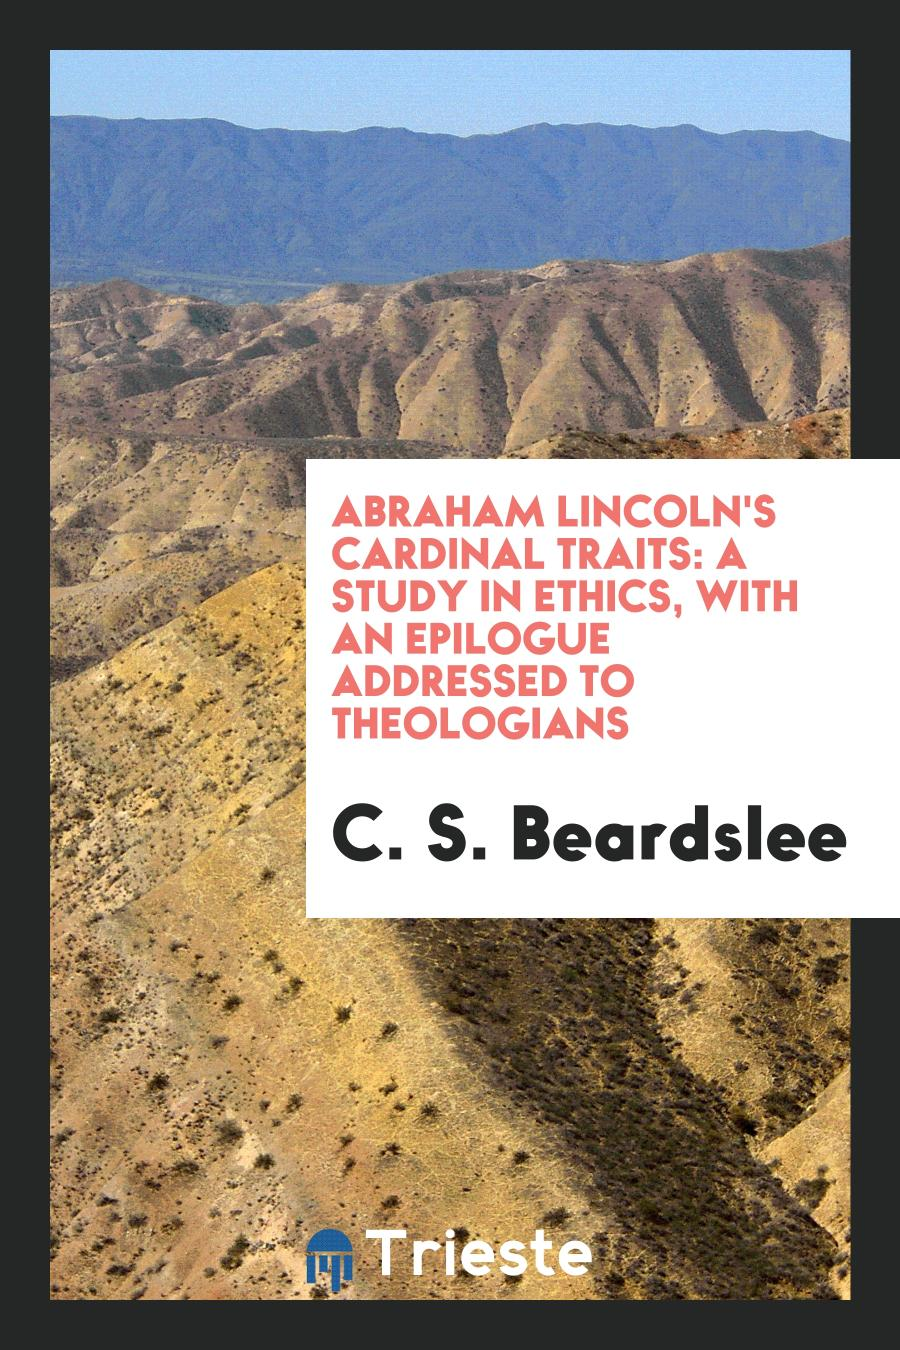 Abraham Lincoln's Cardinal Traits: A Study in Ethics, with an Epilogue Addressed to Theologians